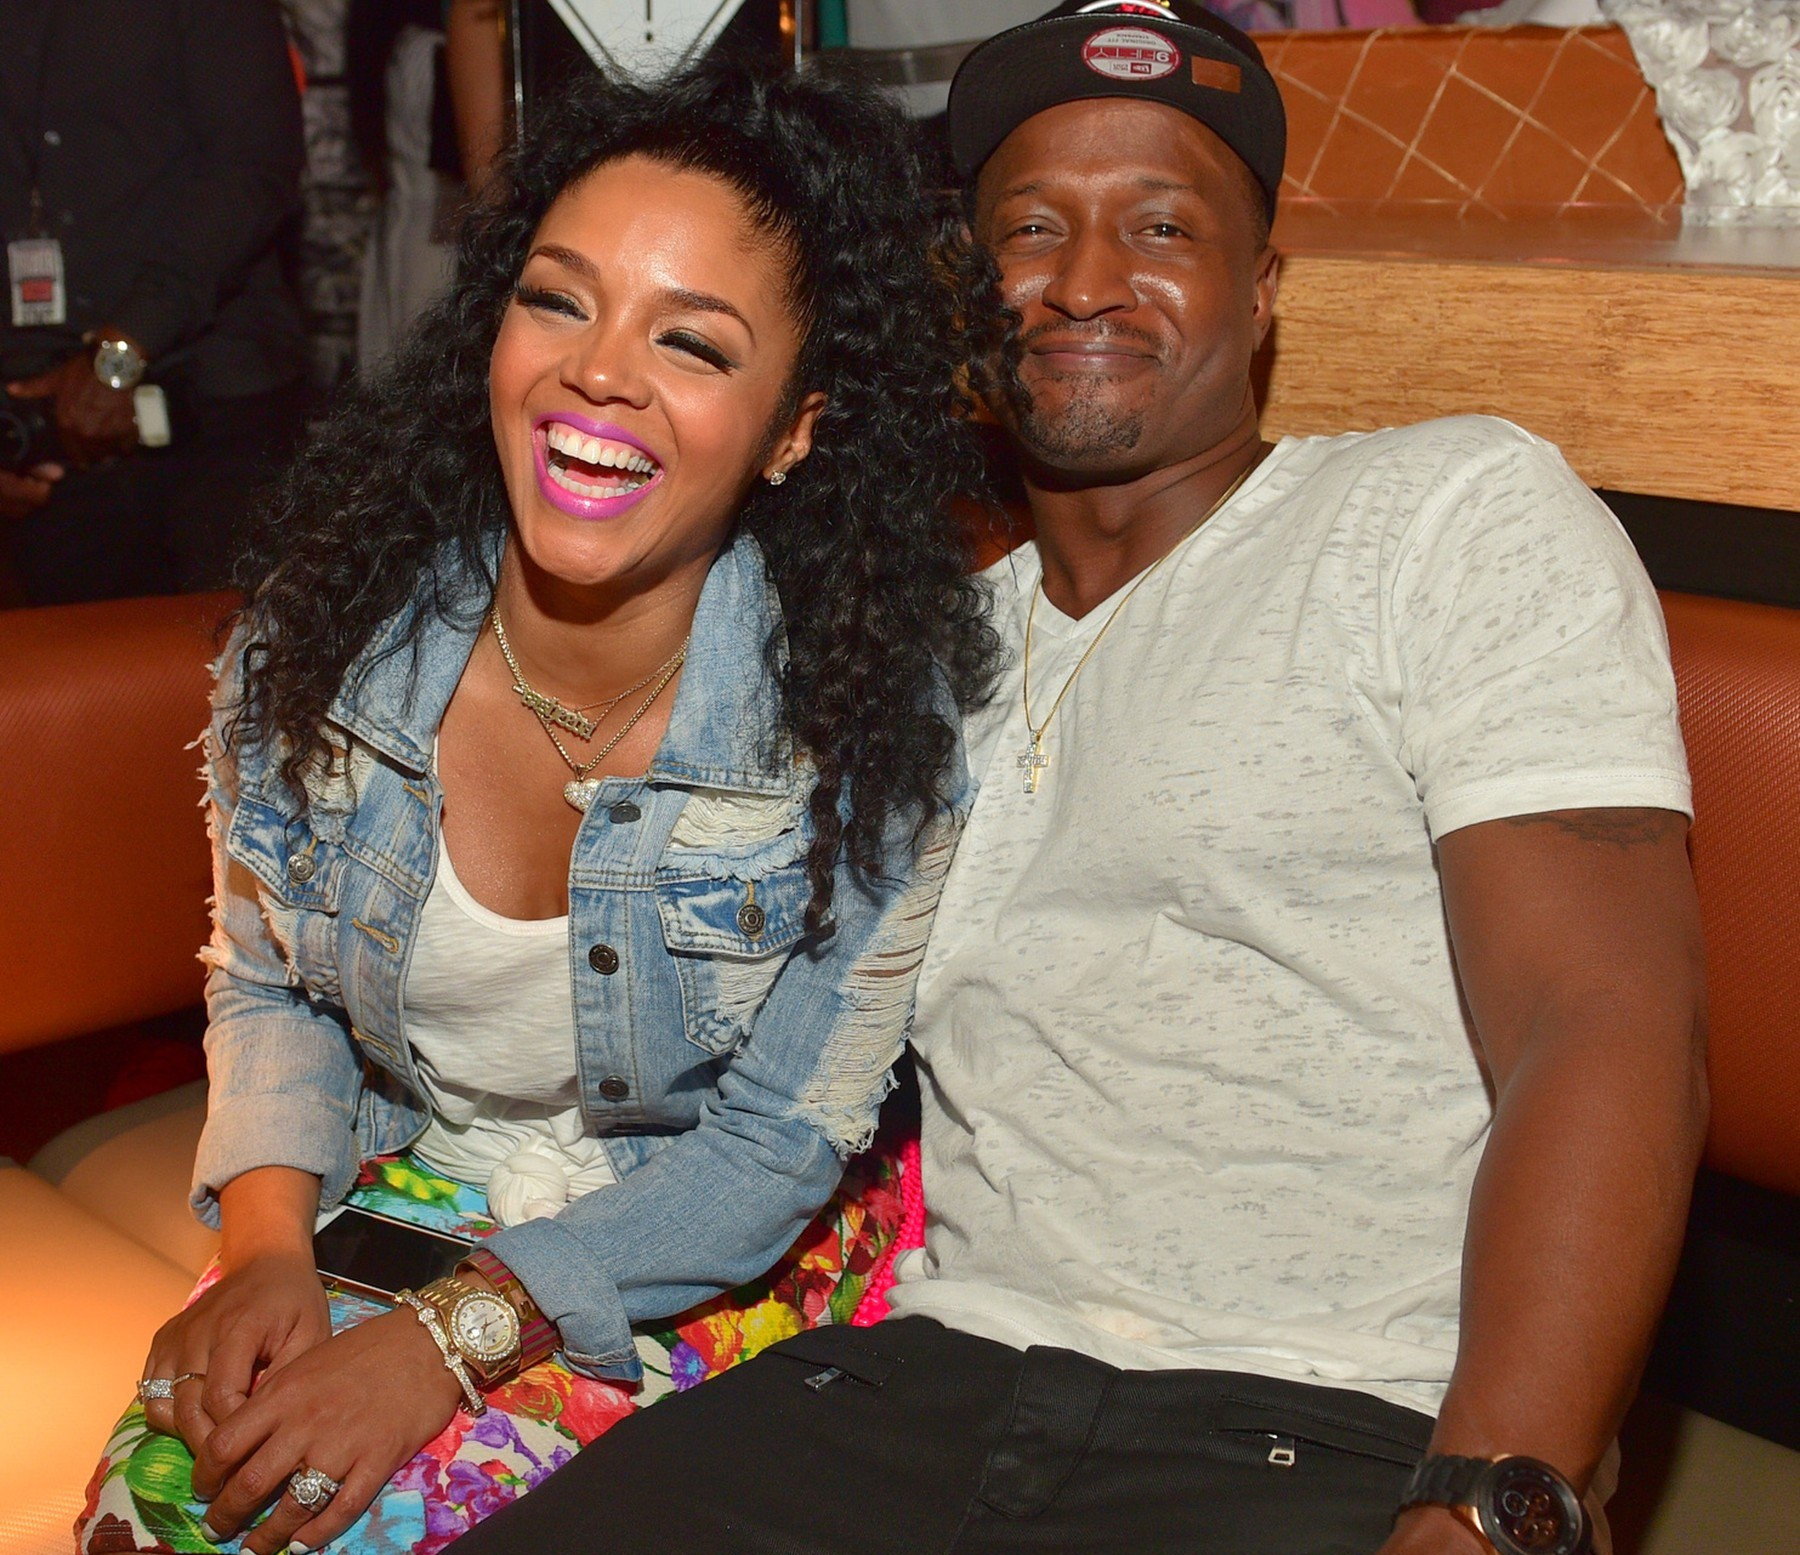 Rasheeda Frost's Fans Want Men's Fashion In Her Pressed Shop Called 'Kirk Collection'